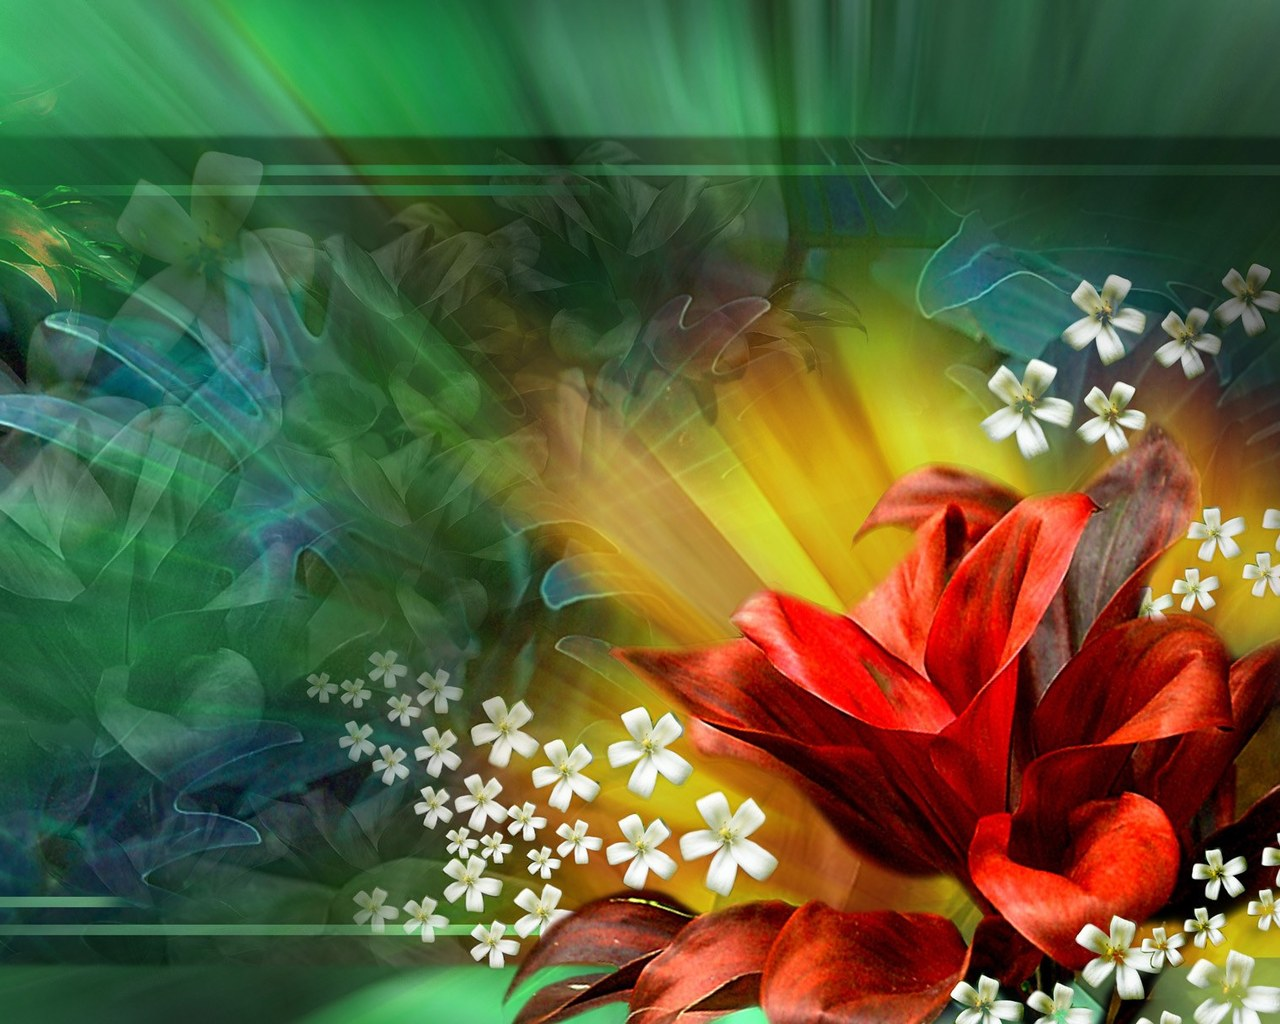 Wallpaper download for desktop - Google Image Result For Http Themescompany Com Wp Content Uploads 2011 12 Flowers Abstract Jpg Backgrounds Pinterest Wallpaper 3d And Wallpaper